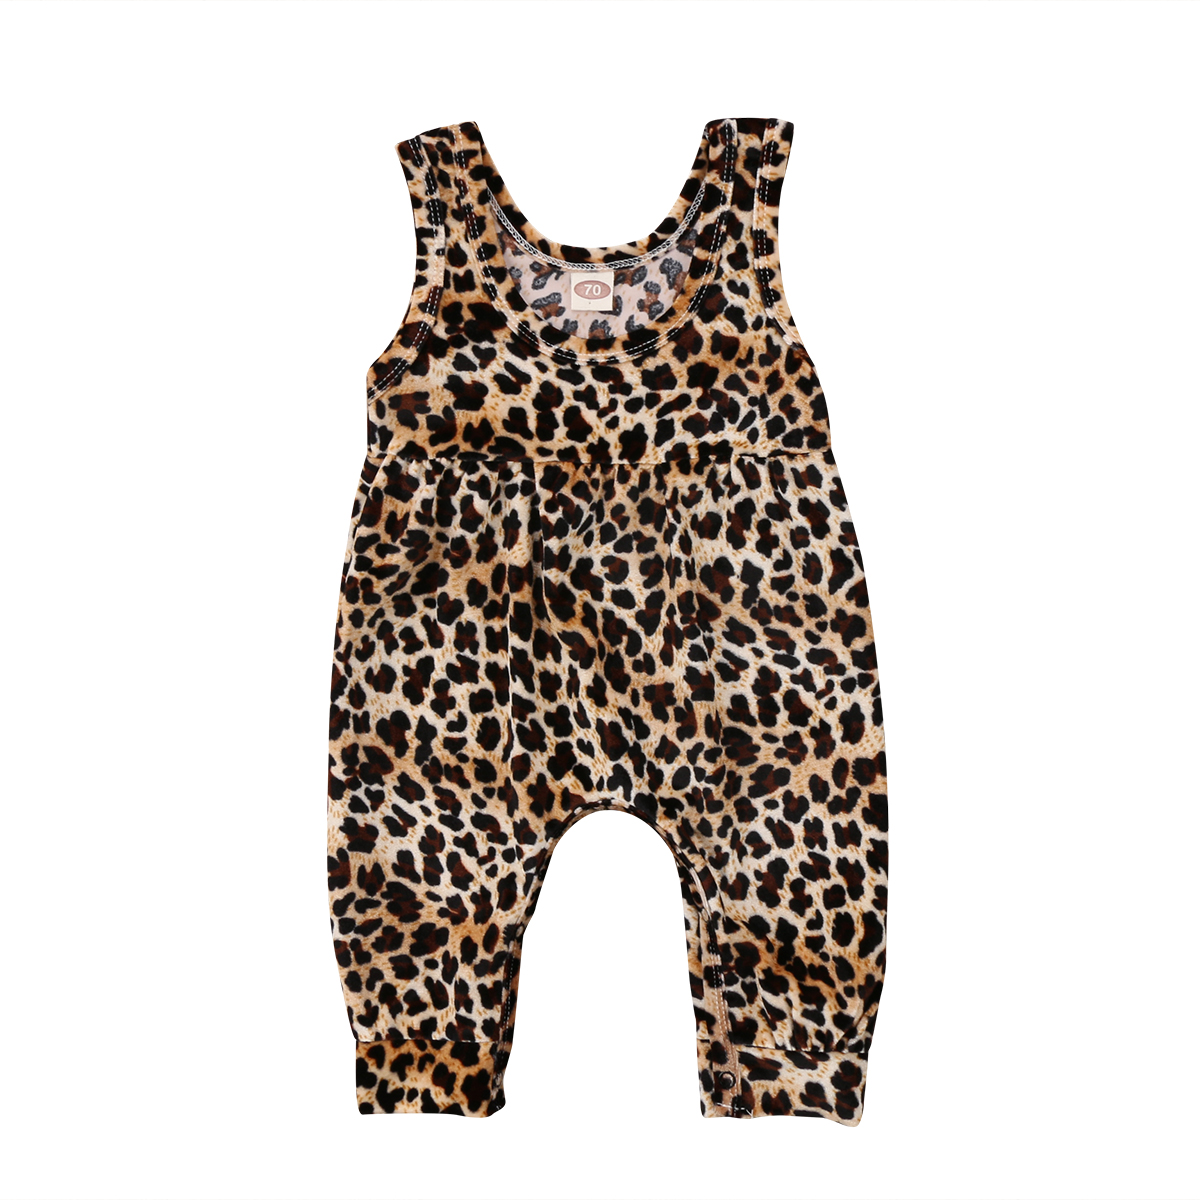 Print Sleeveless Toddler Girl Rompers Clothing Newborn Baby Girls Leopard Romper Jumpsuit Harem Pants Outfits Clothes Summer 2017 denim romper newborn baby boy girl summer sleeveless pocket clothes toddler kids jumpsuit sunsuit children clothing outfits